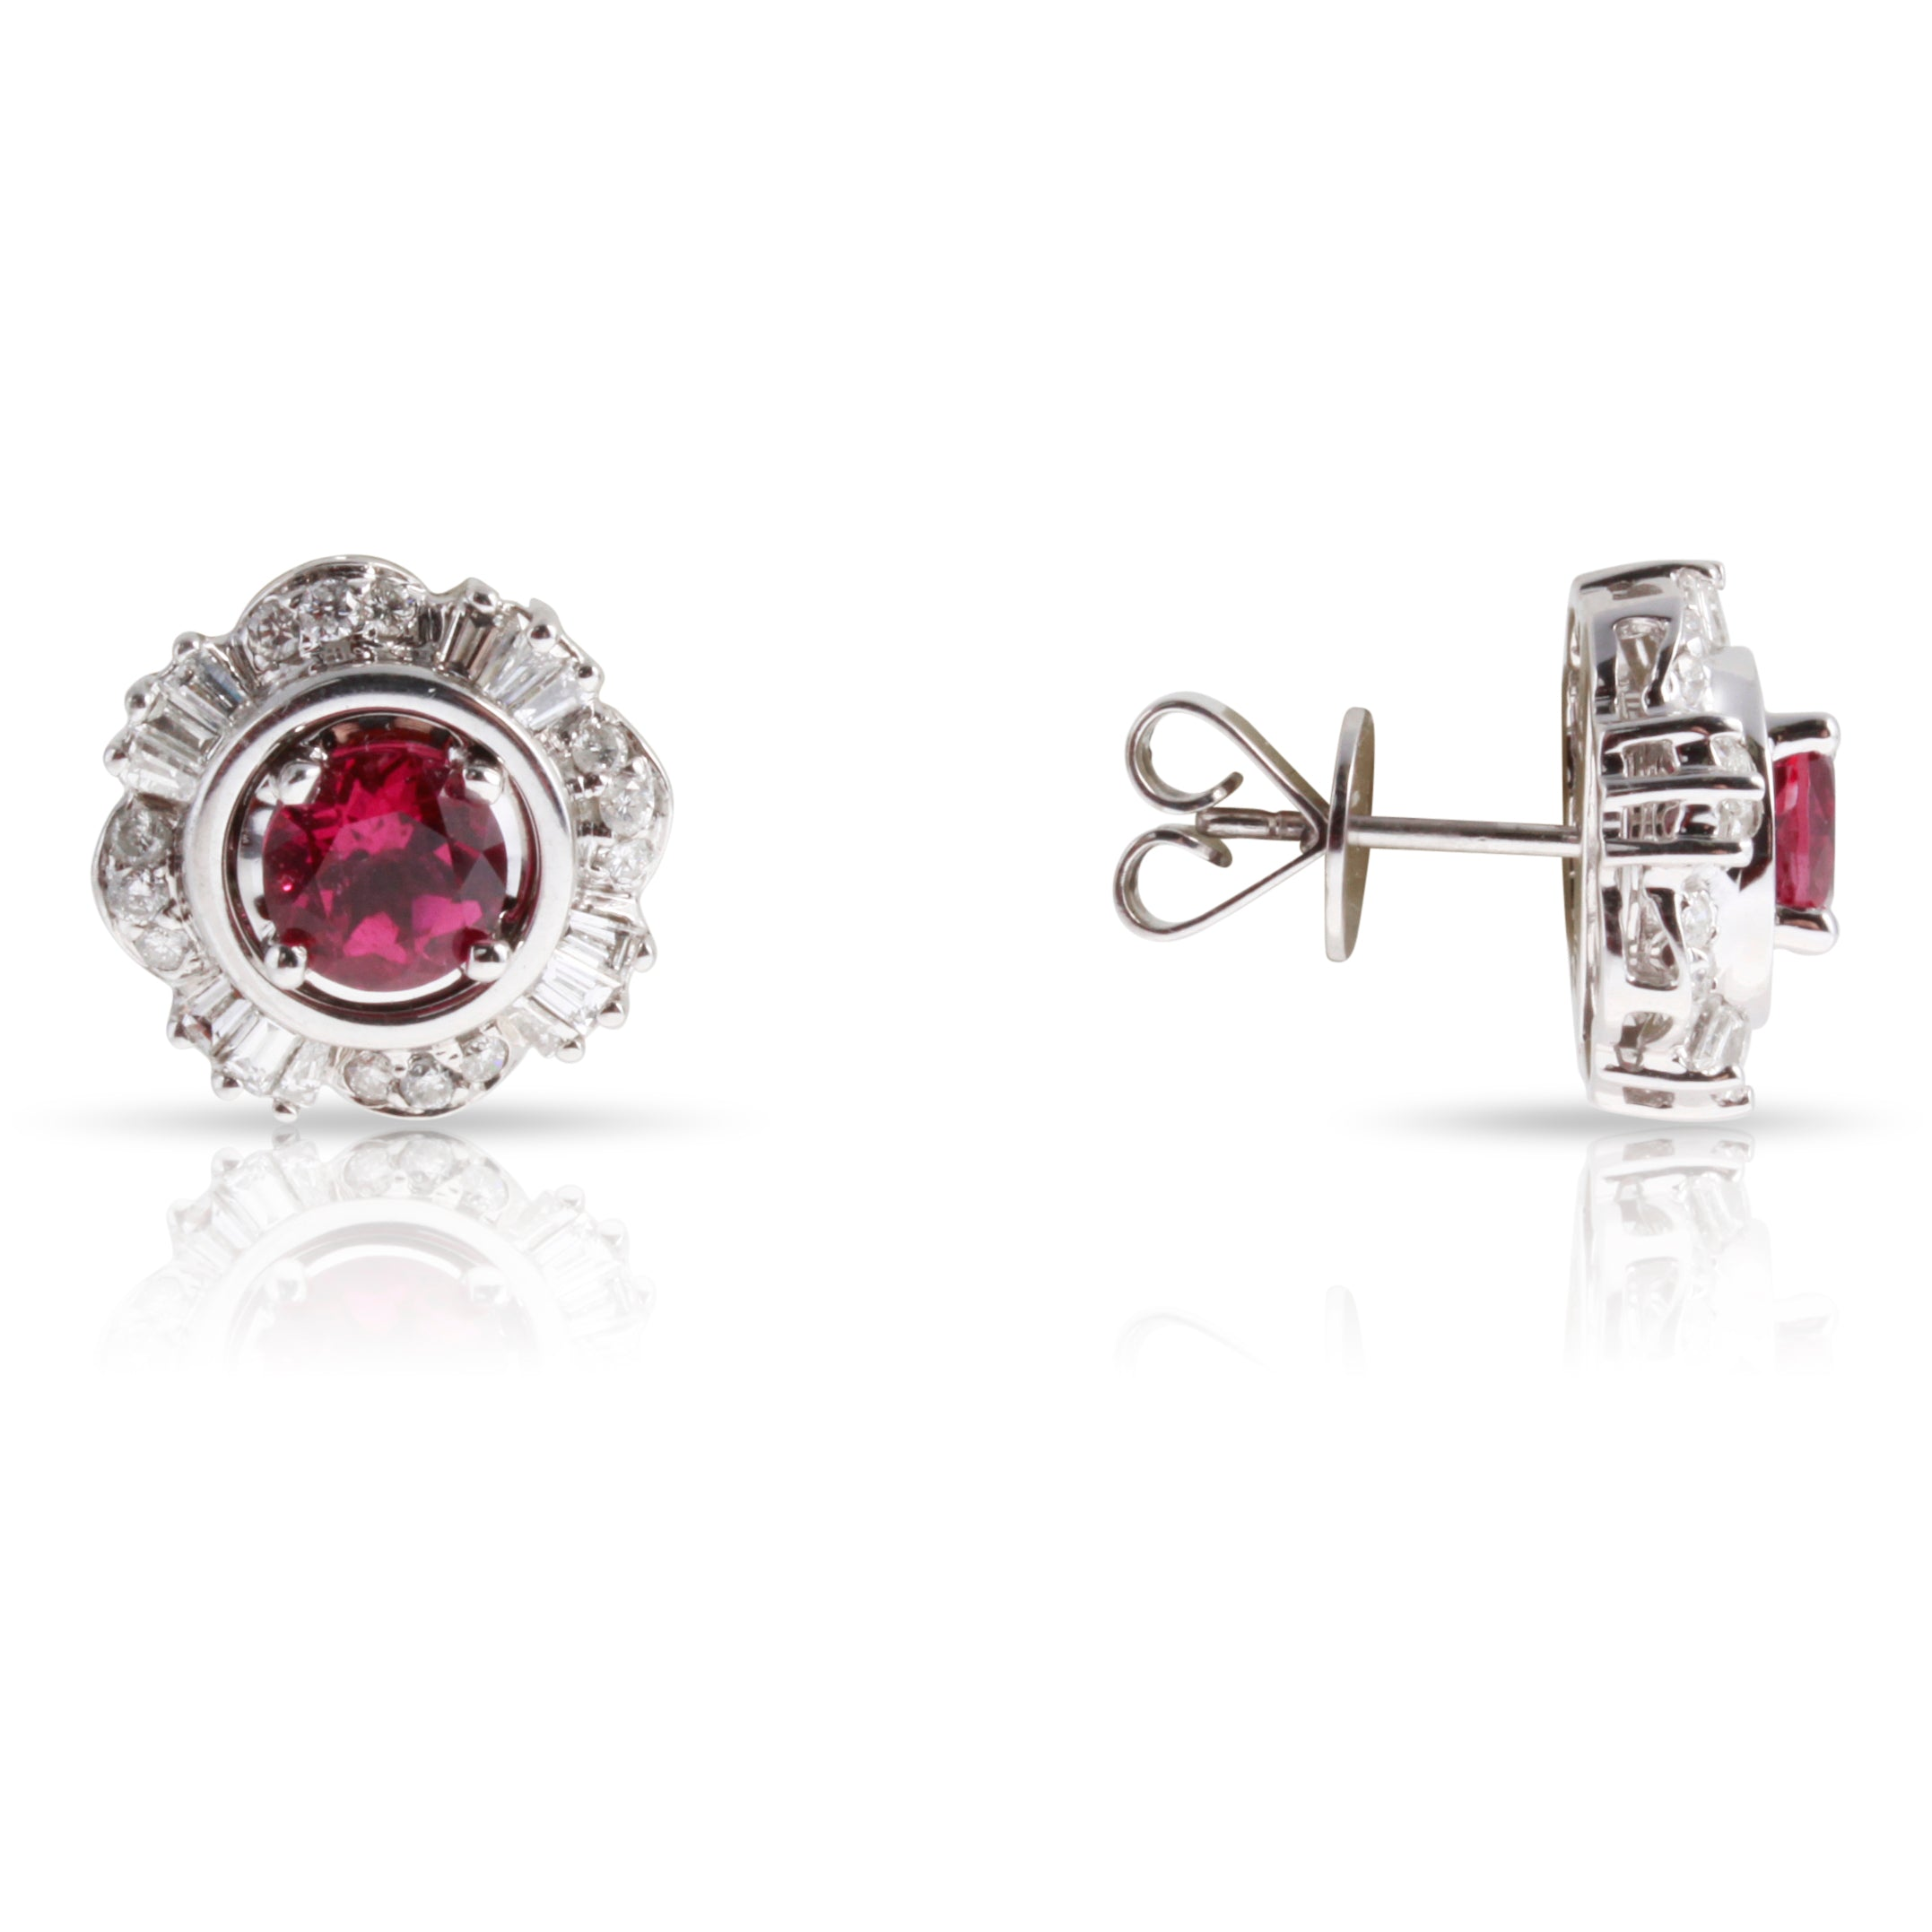 Pink Tourmaline Earrings With Diamond Jackets | The Jaclyn